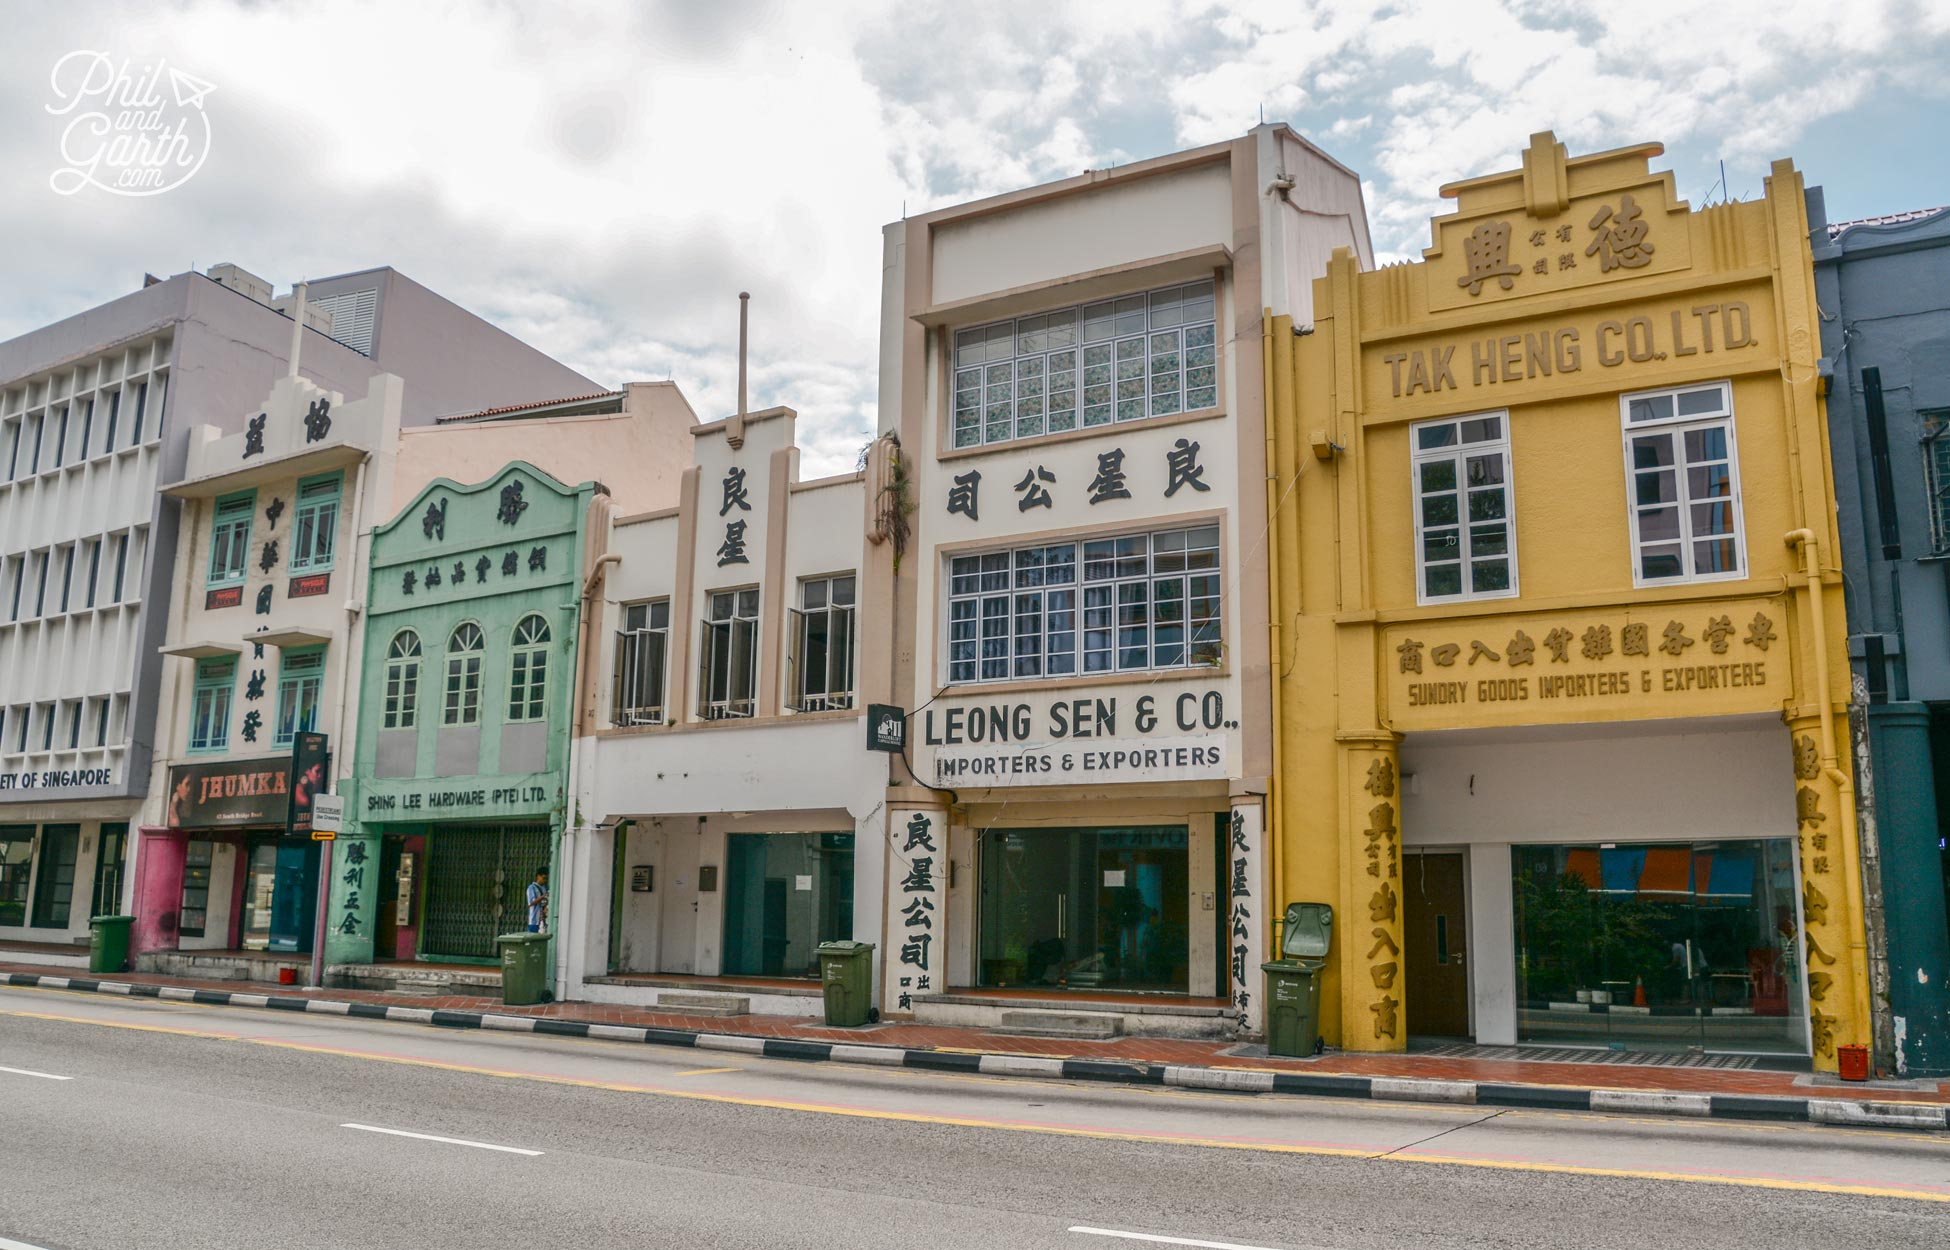 Some old merchant shophouses in Singapore